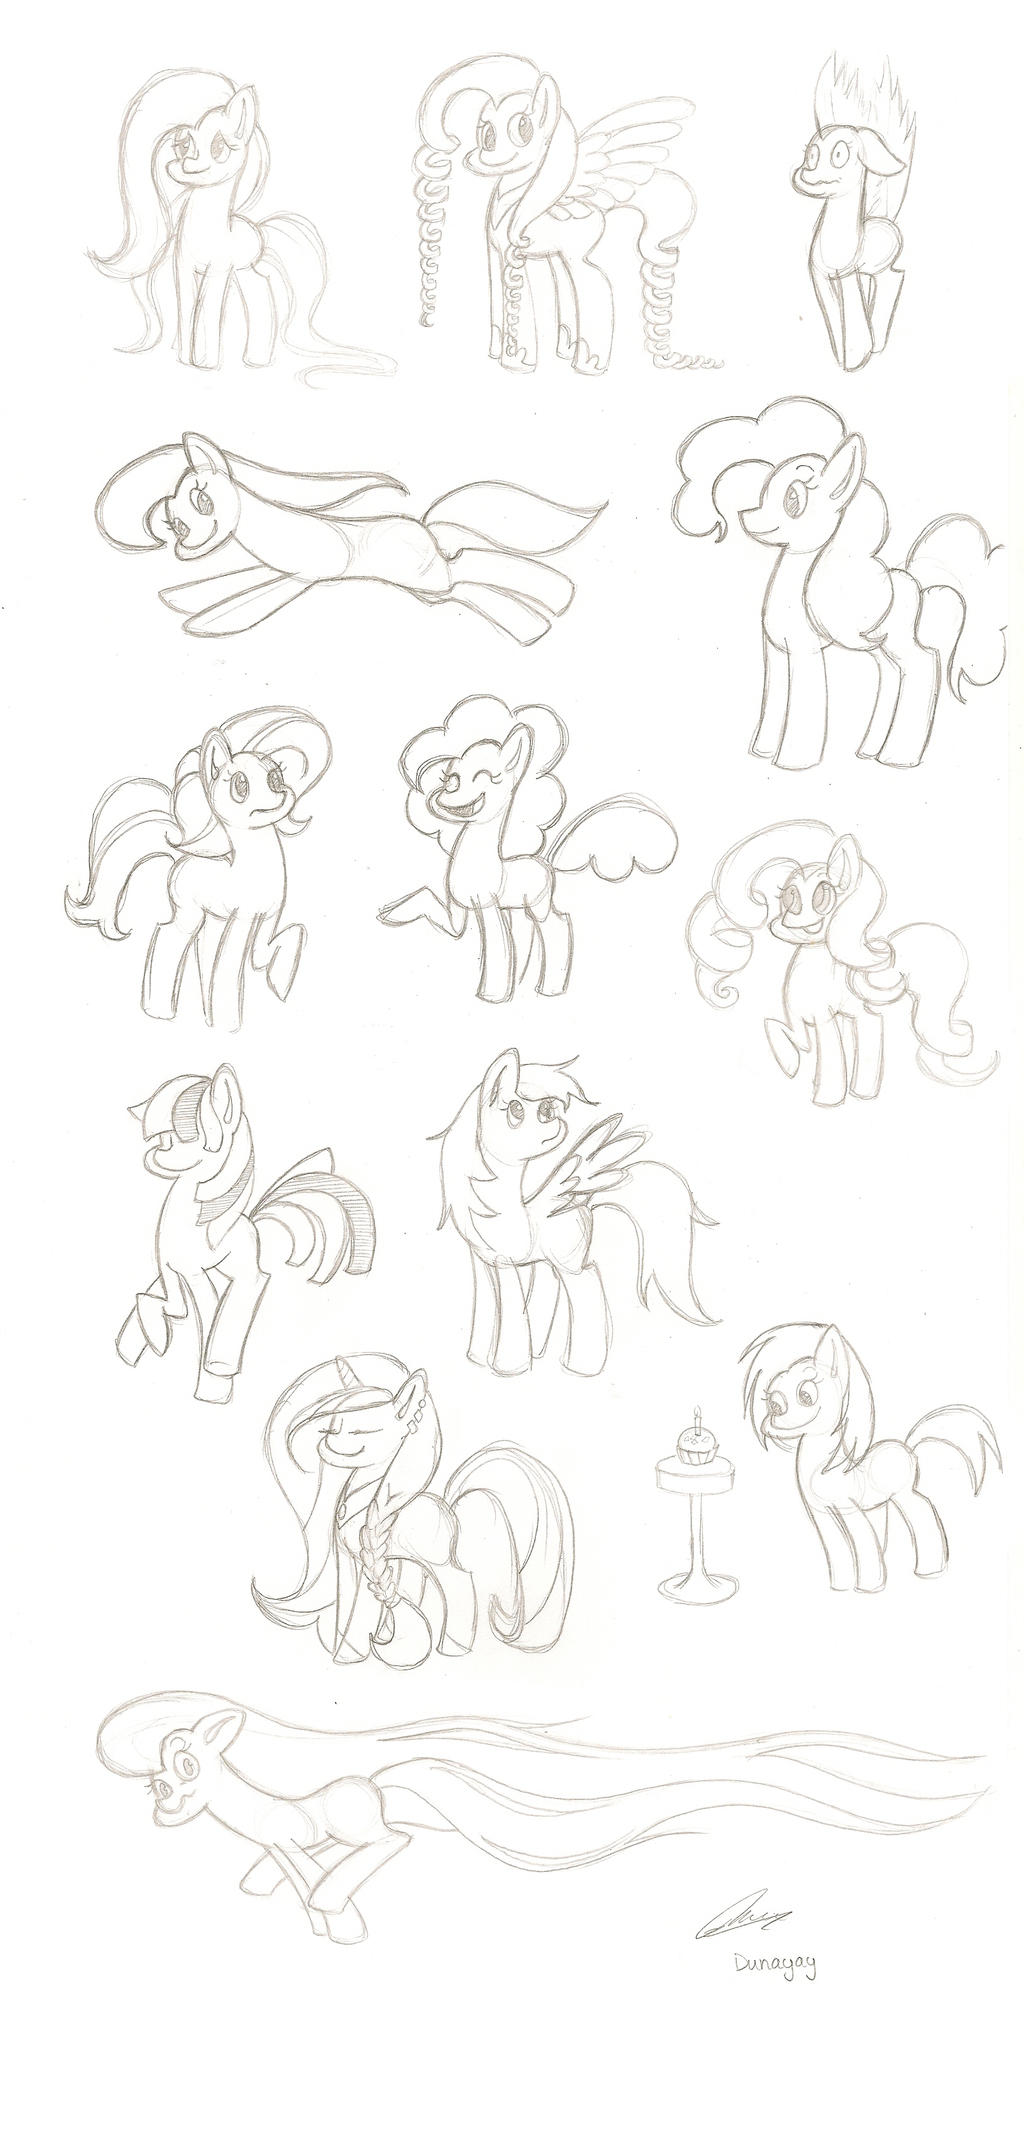 Mlp sketches - for fun! by Dunayay